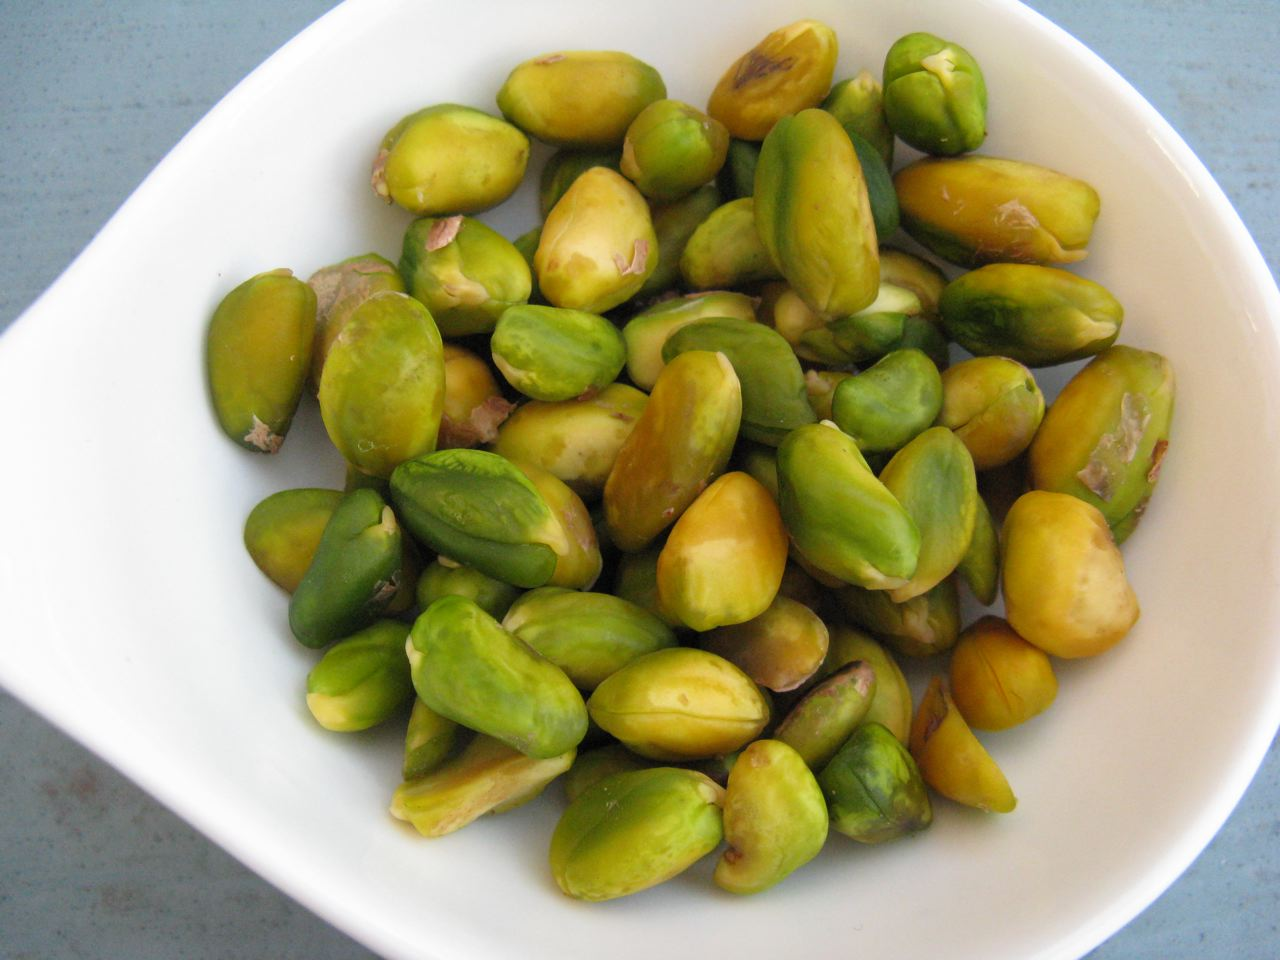 A small handful of these raw, unshelled and unsalted nuts go a long way!